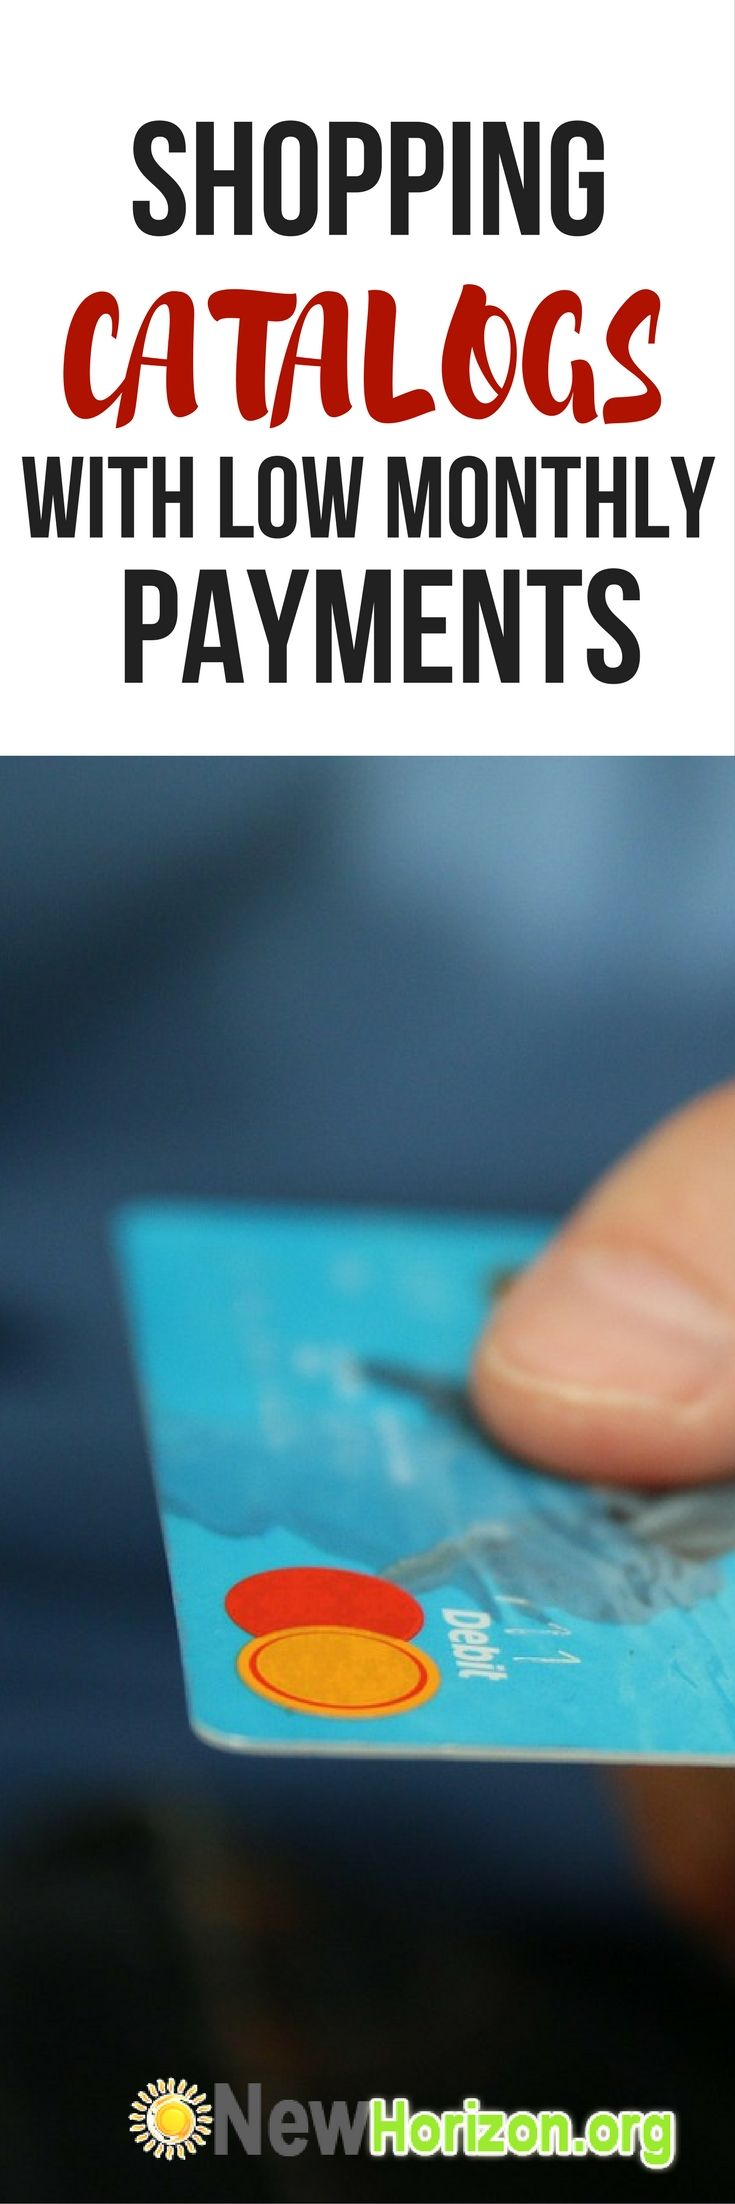 Merchandise Cards Catalog Credit Cards Bad Credit Credit Cards Types Of Credit Cards Credit Card